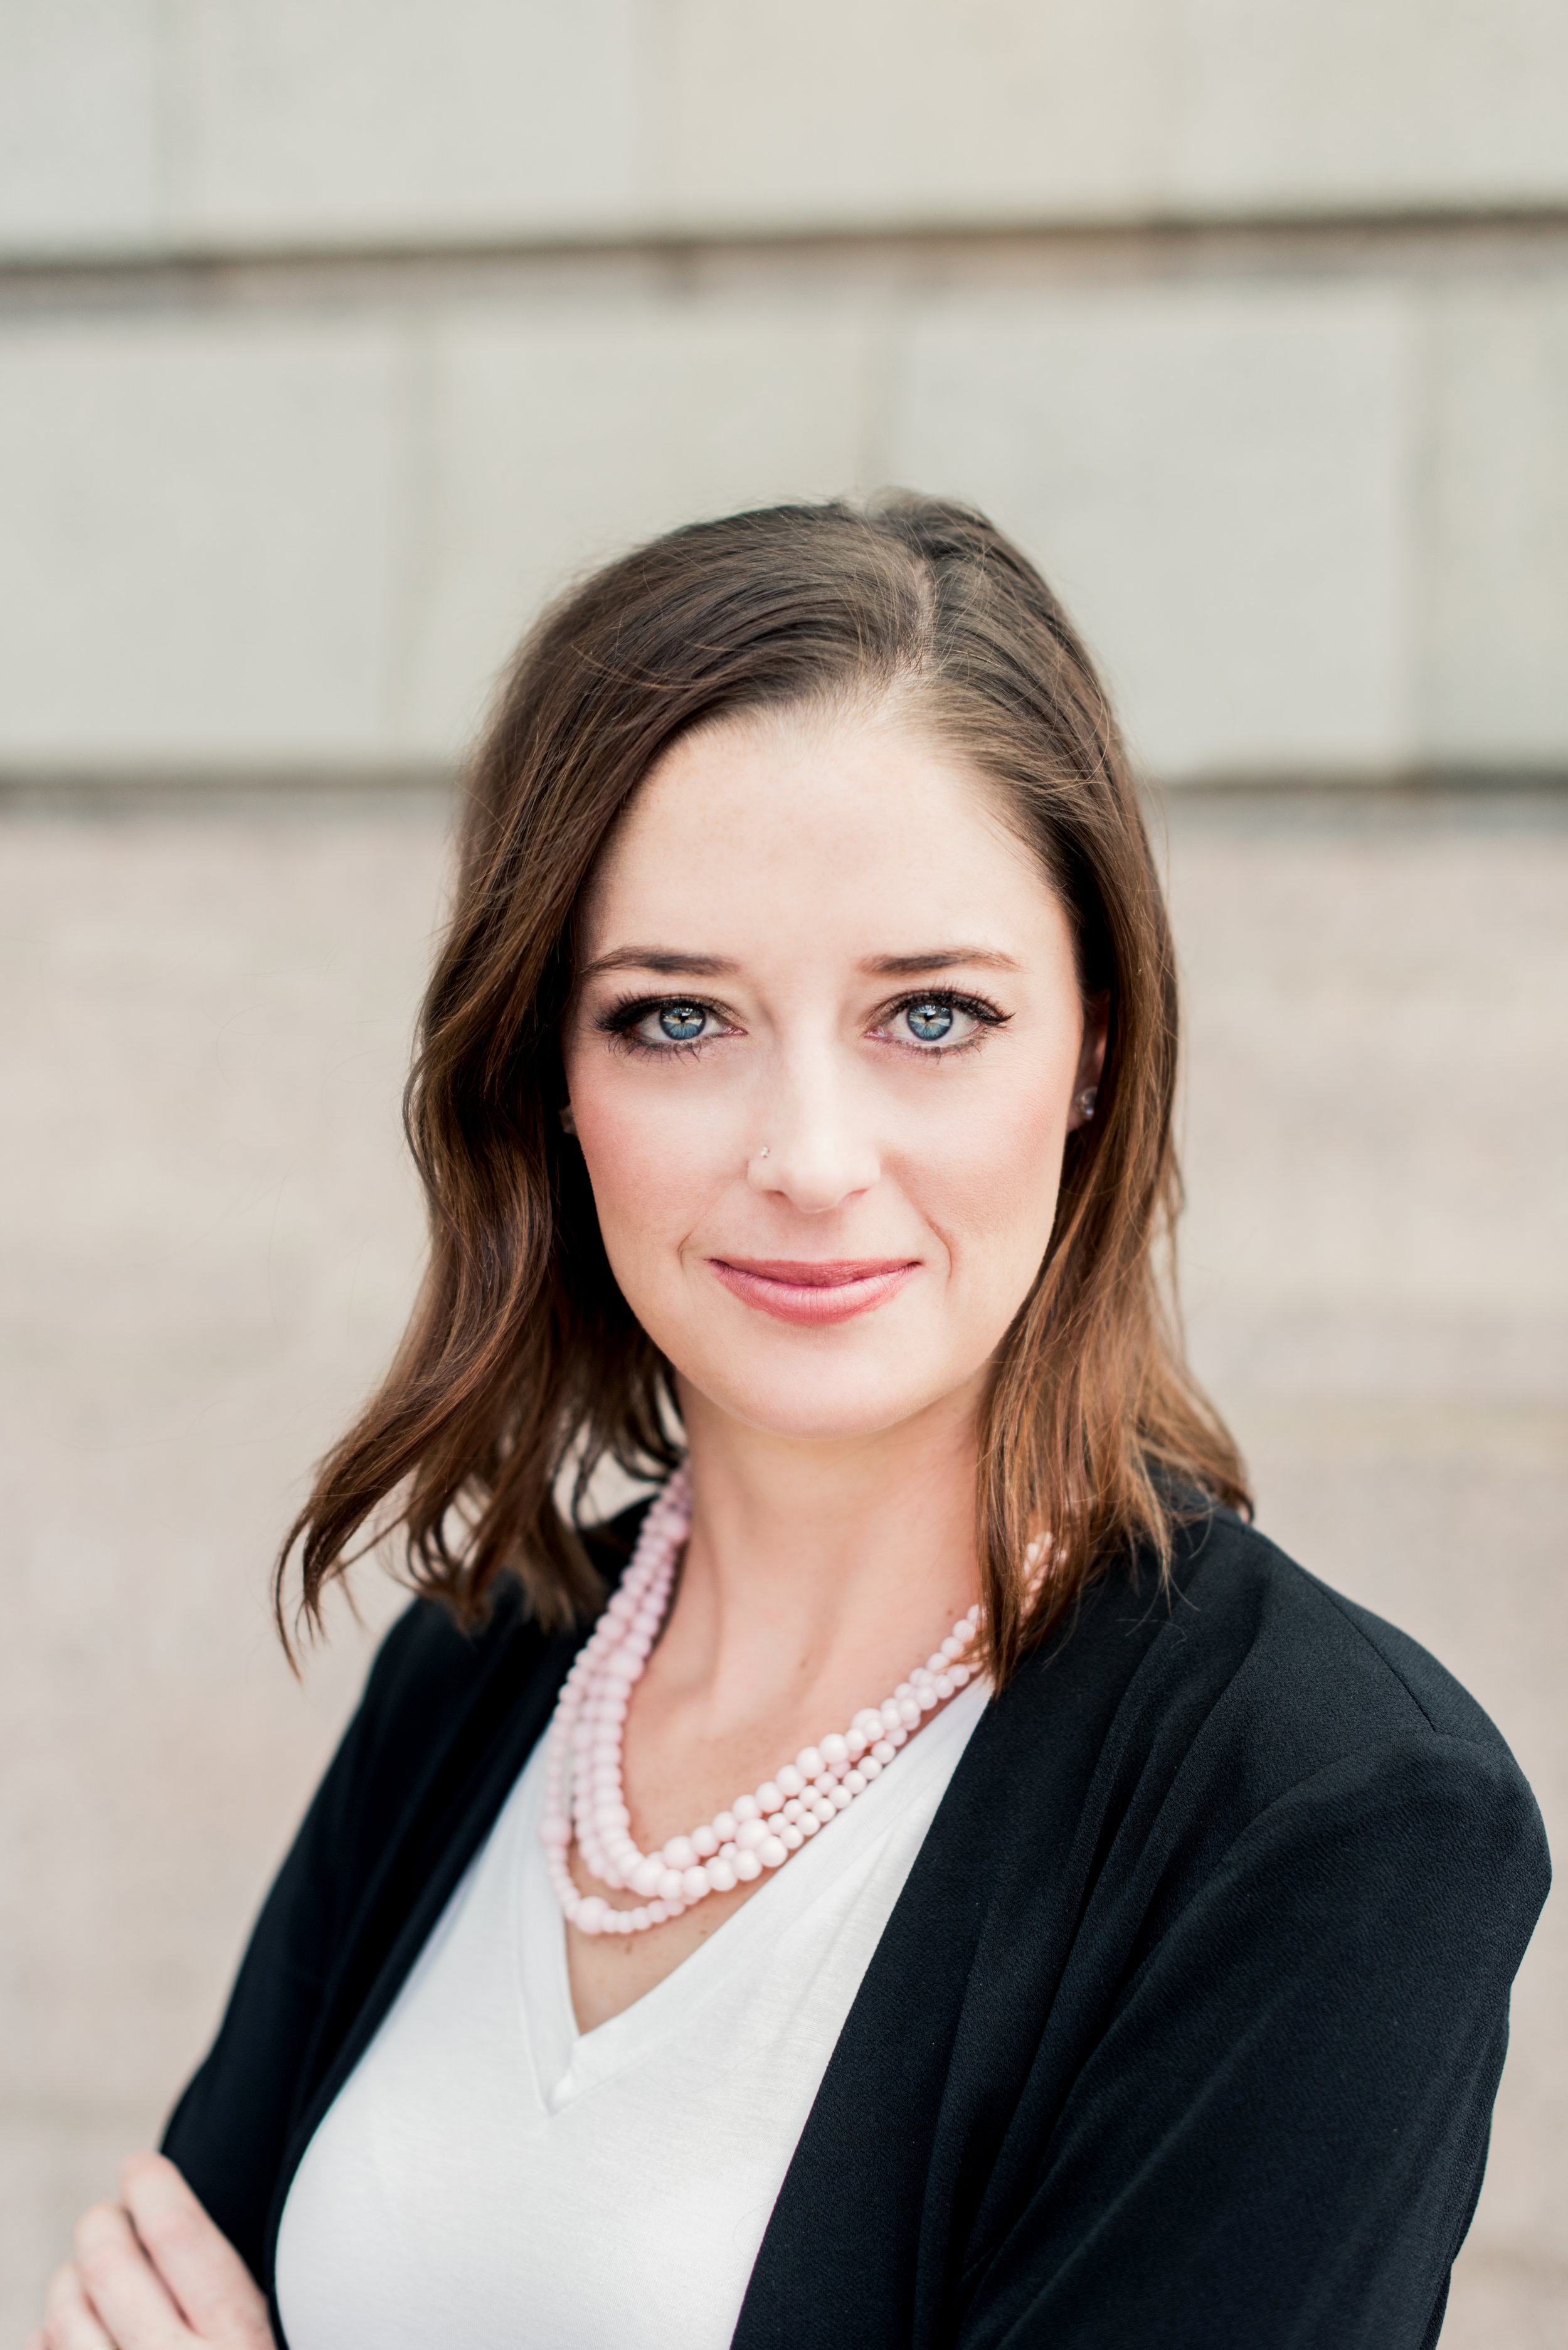 Hi, I'm Ann. - I'm a Denver Real Estate agent, like 23,000 other people in this city. What sets me apart is that I'm motivated, driven, experienced, and all-around awesome. I've worked with the top-producing agents at Kentwood City Properties for three and a half years, and have learned from the best of the best. My knowledge of new construction, the Denver area (proud native here), and the ins-and-outs of the contract make me the perfect agent (without being a typical